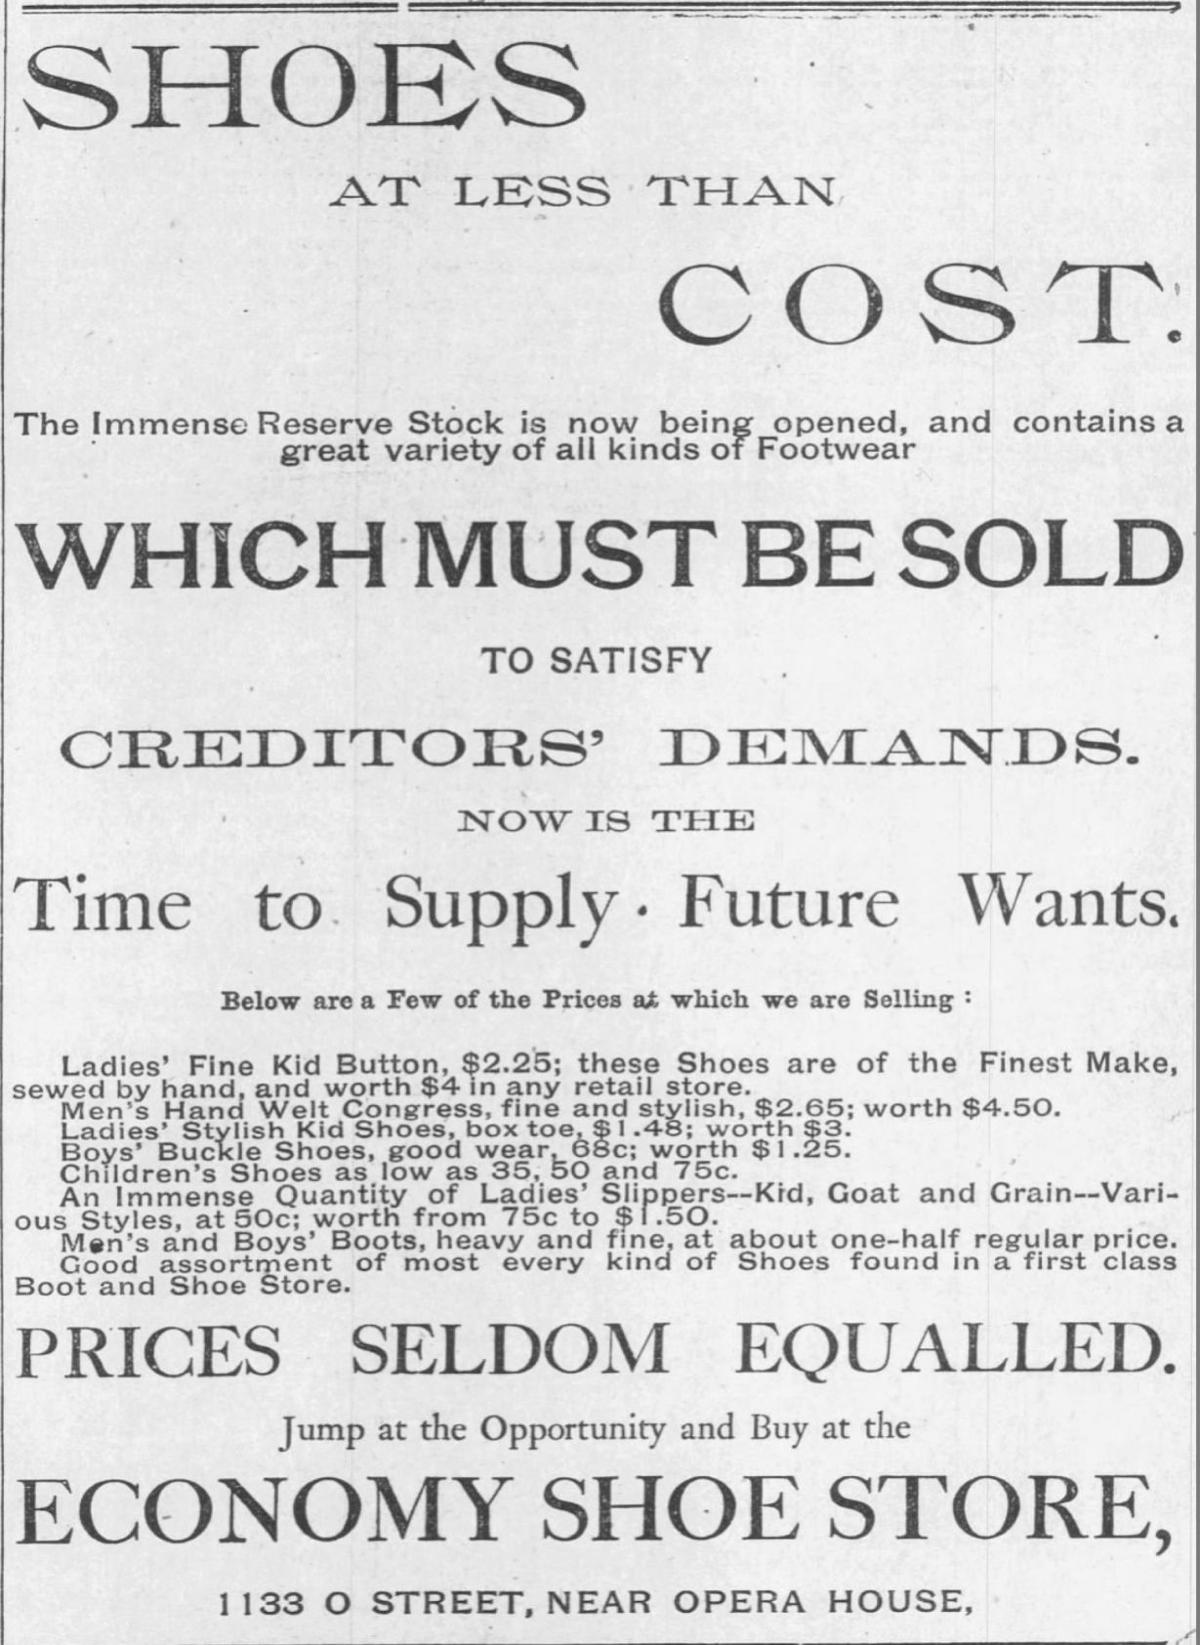 Sept. 23, 1888, advertisement for Economy Shoe Store in downtown Lincoln